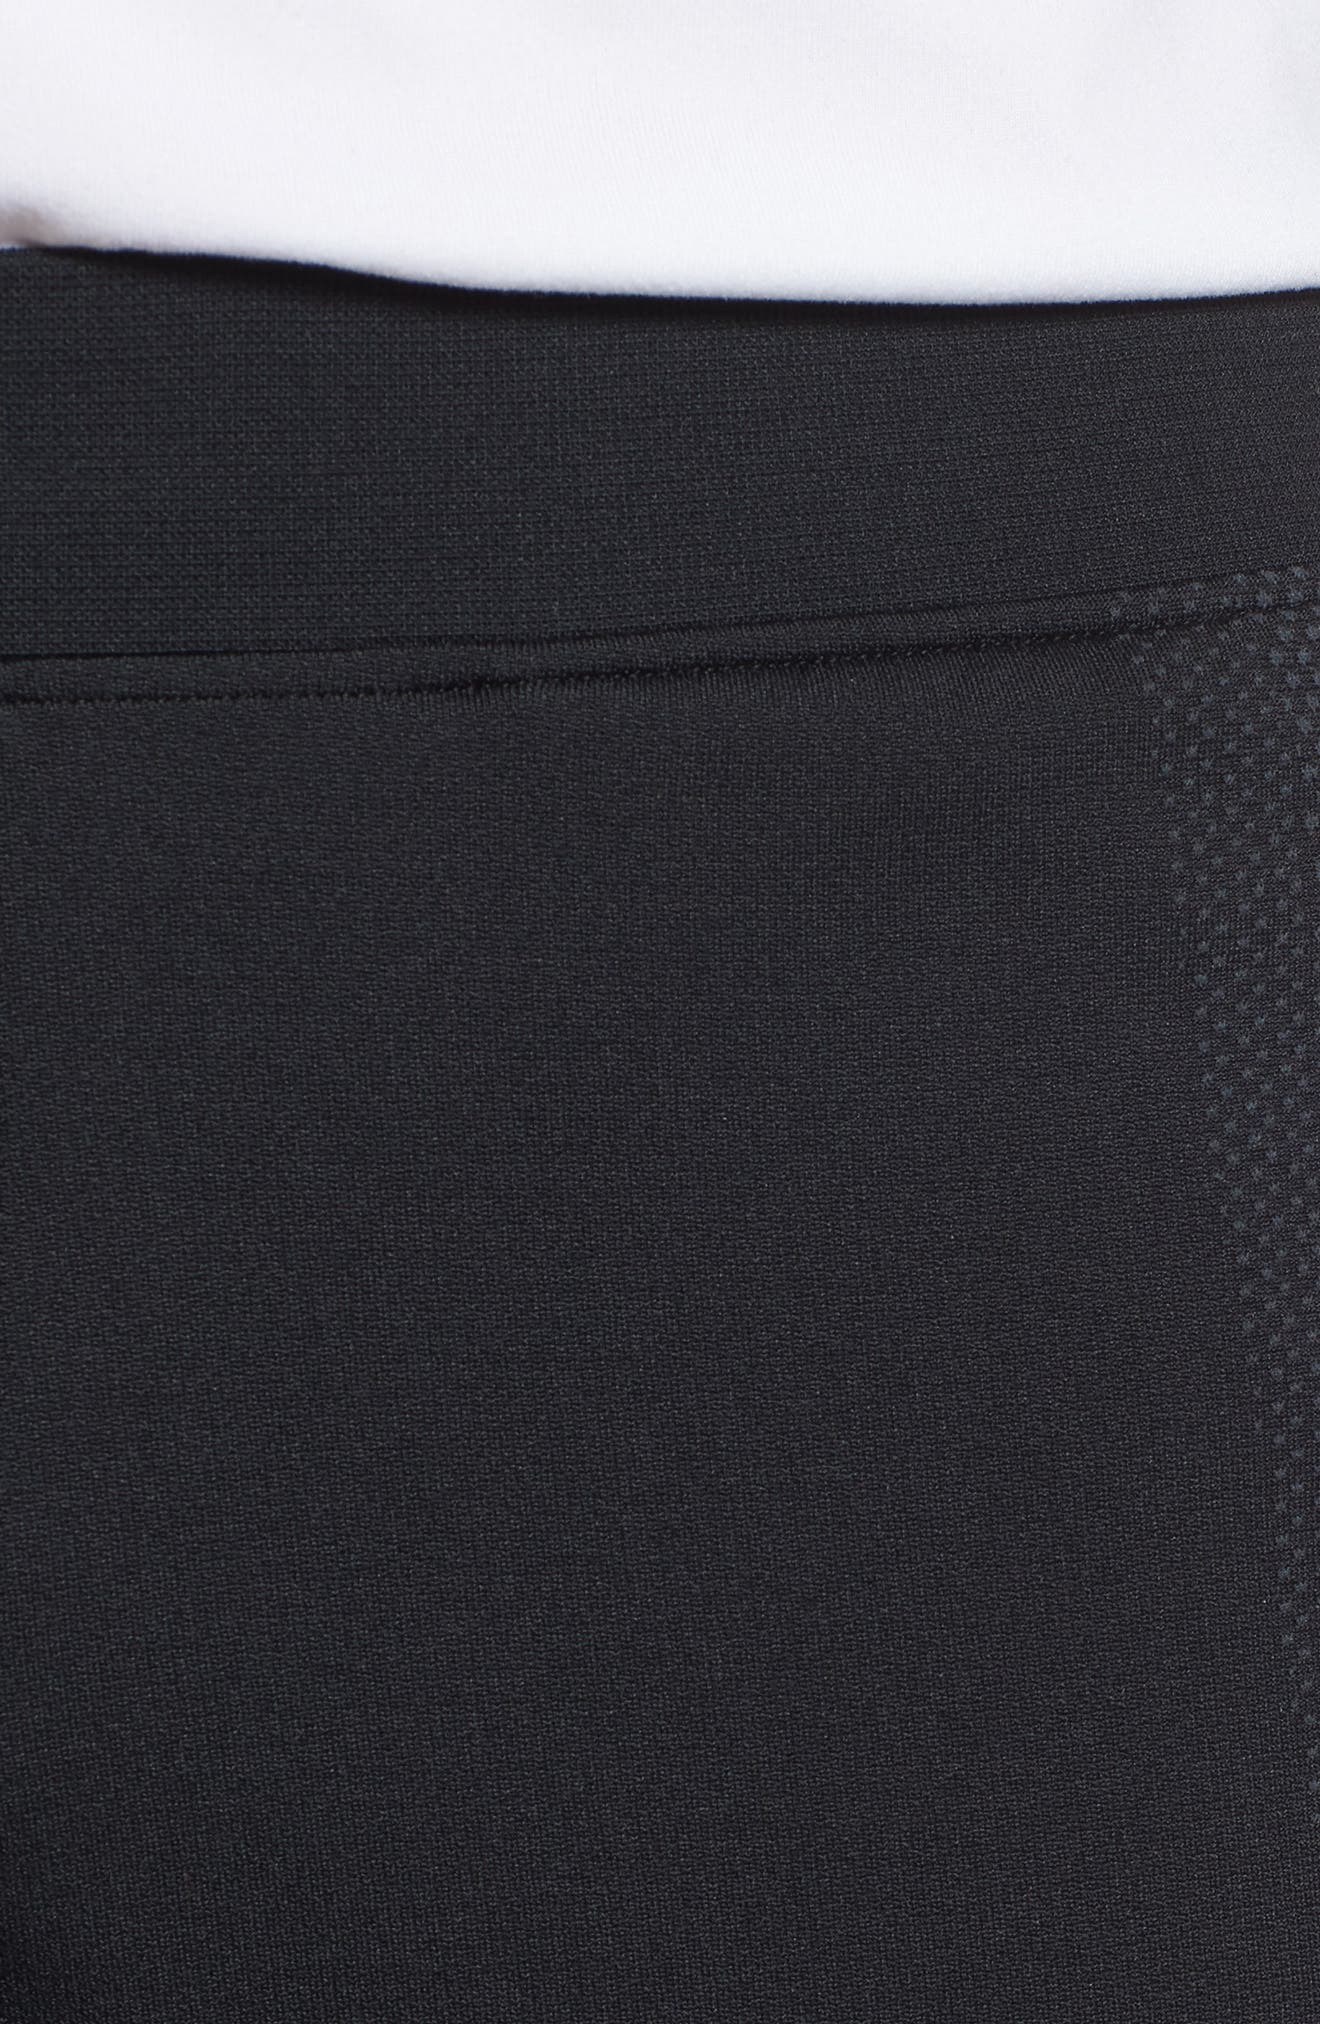 Threadborne Seamless Shorts,                             Alternate thumbnail 4, color,                             BLACK/ STEALTH GREH